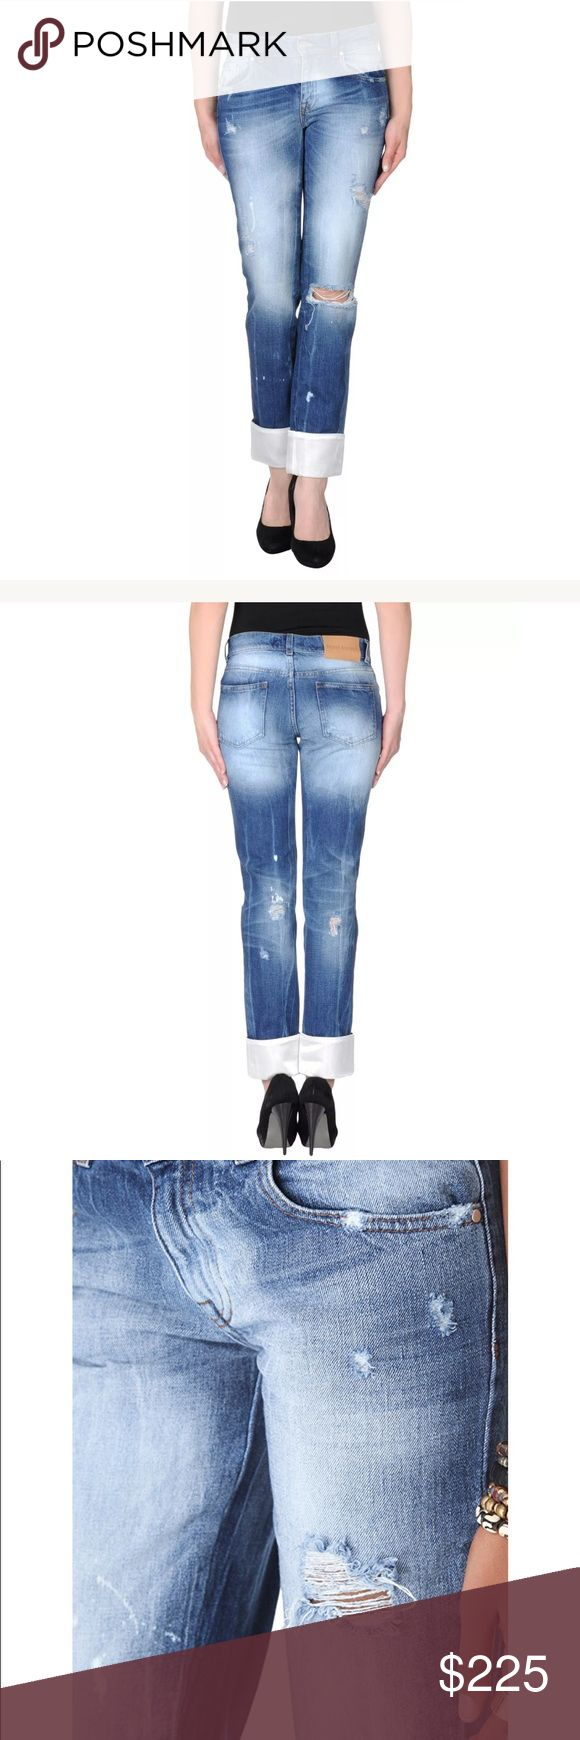 🎀Pierre Balmain distressed cuffed cropped jeans Wide, satin-trimmed cuffs bring a romantic, grunge-inspired element to these streaked skinny jeans. Shredded holes and bleach splashes add a nonchalant edge, and 5-pocket styling finishes the pair. Button closure and zip fly.  Fabric: Denim. 100% cotton. Wash cold or dry clean. Made in Italy.  MEASUREMENTS Rise: 8in / 20cm Inseam: 29in / 74cm Leg opening: 12in / 30.5cm 100% Authentic size 27 Pierre Balmain Jeans Ankle & Cropped